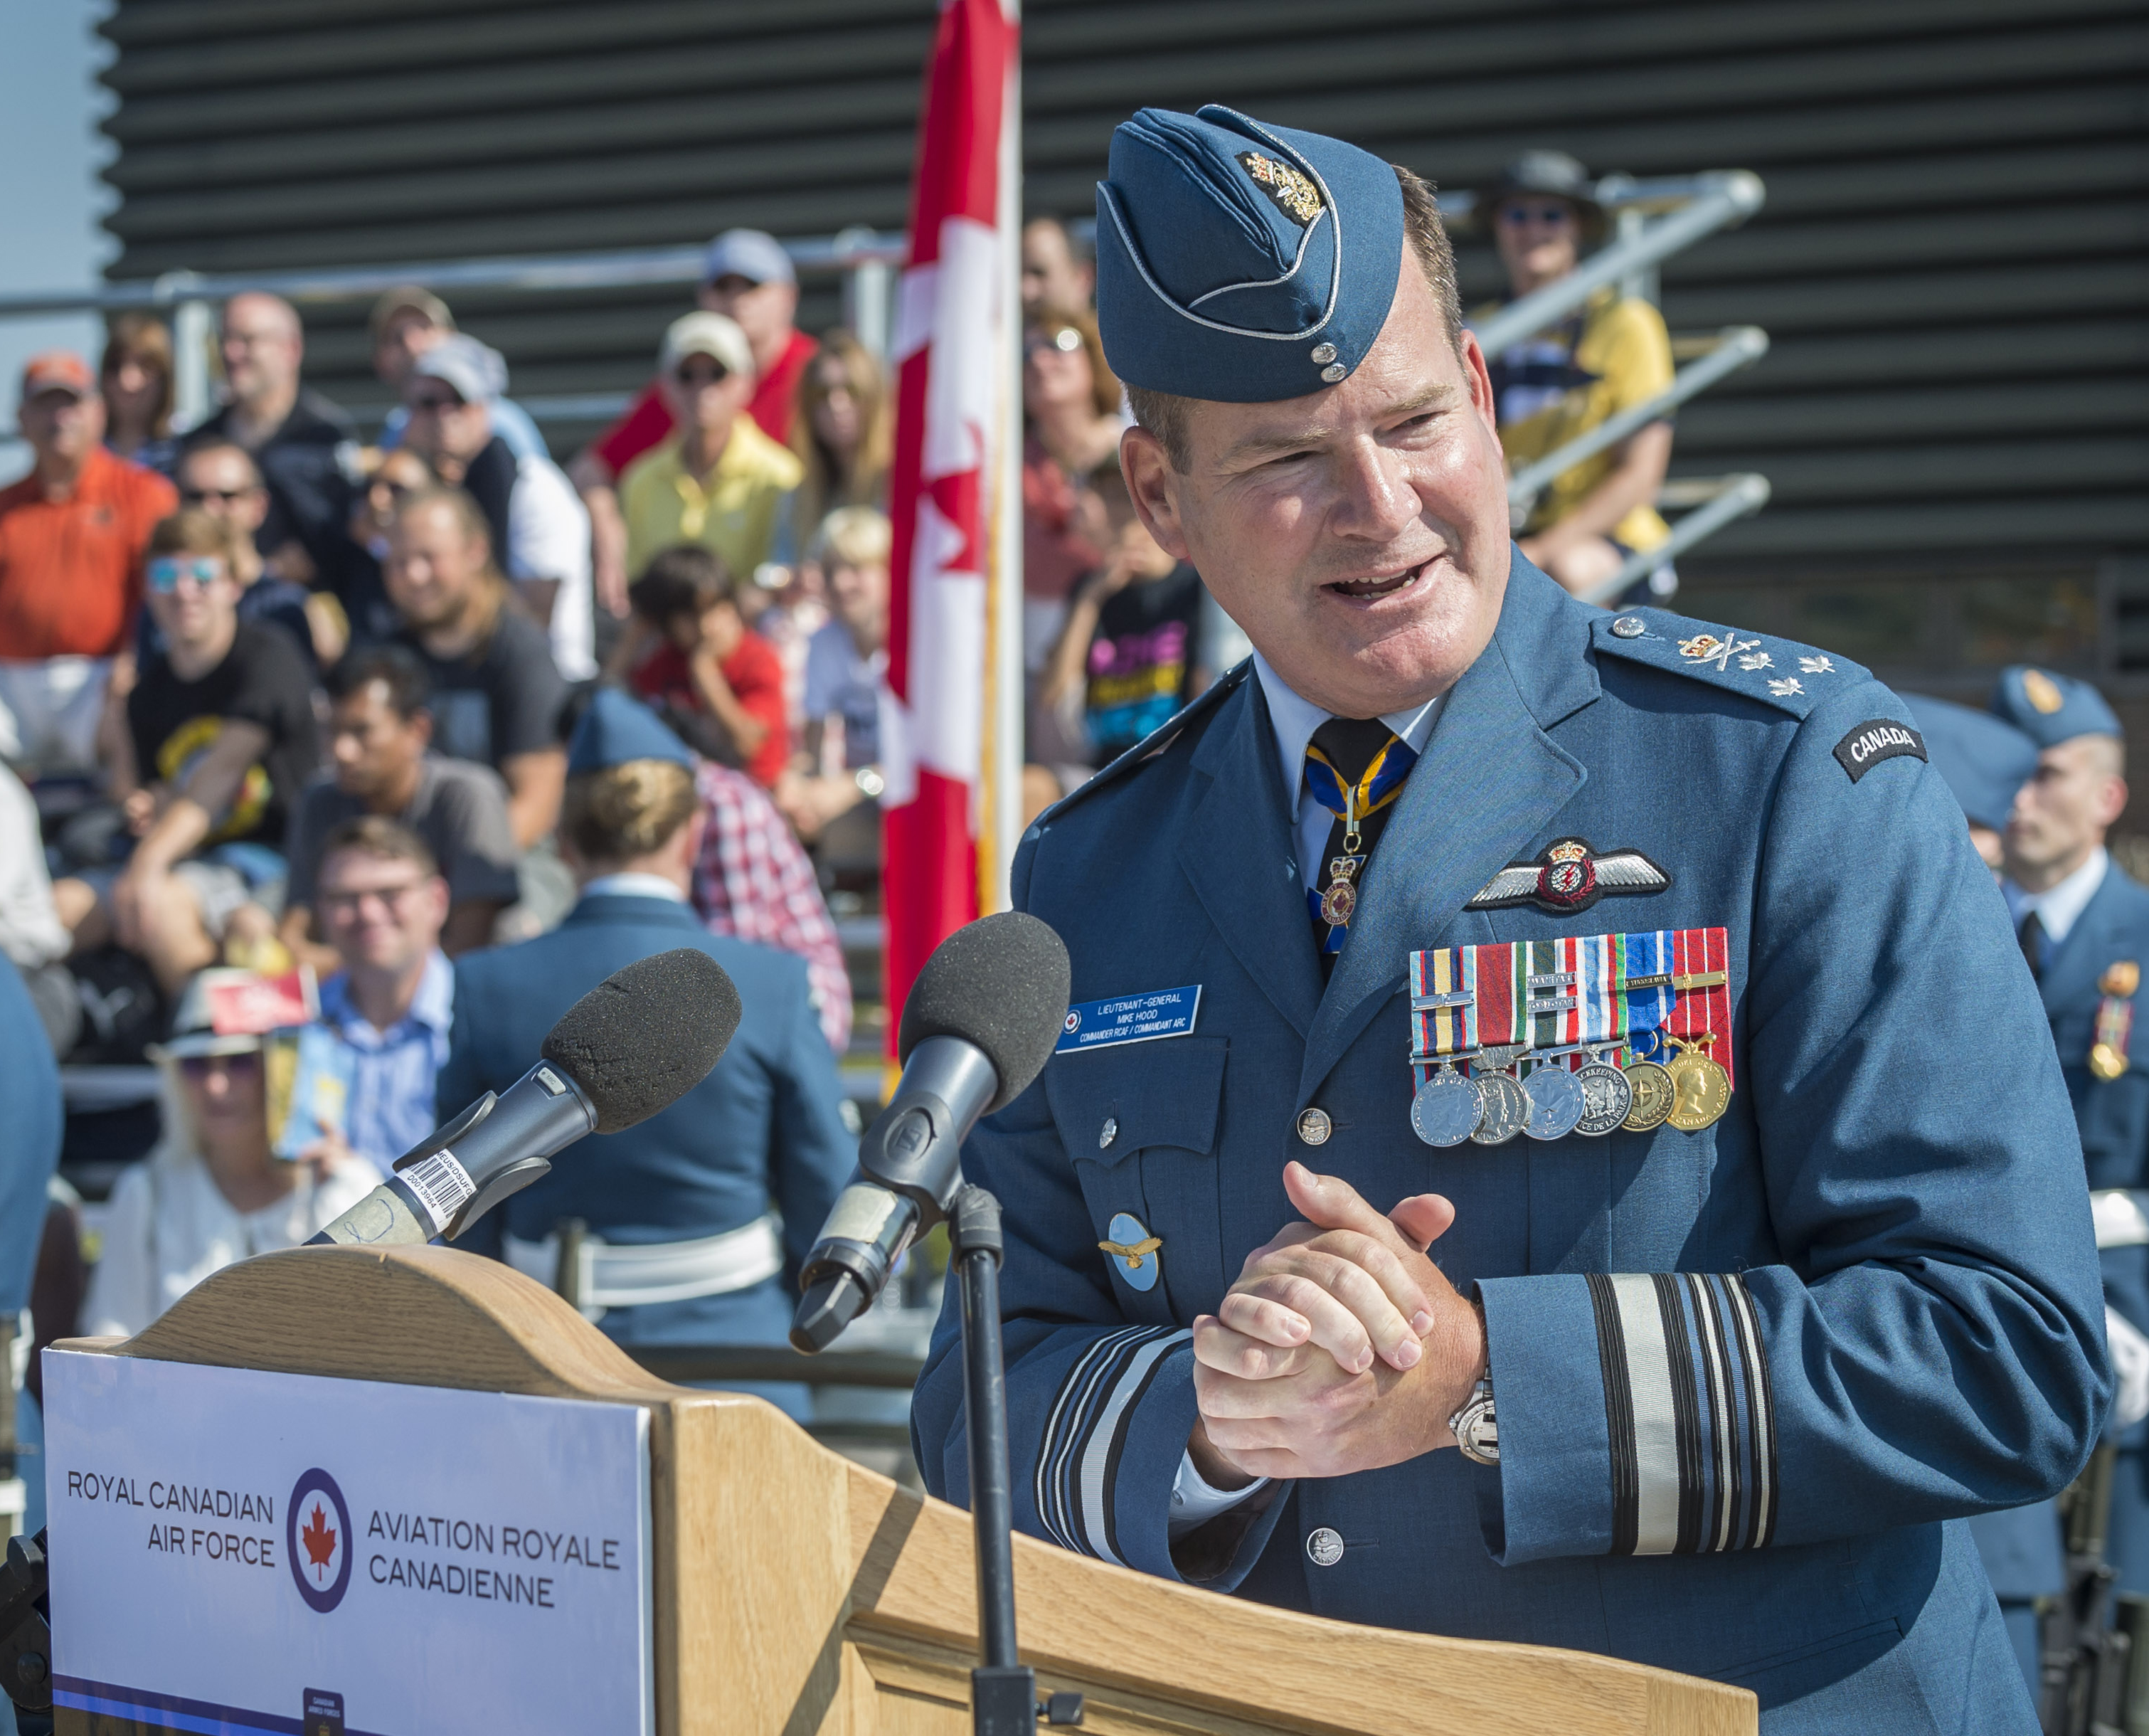 Lieutenant-General Michael Hood, commander of the RCAF, speaks to veterans, spectators and RCAF personnel on parade during the national Battle of Britain commemorative ceremony in Gatineau, Quebec, on September 17, 2017. PHOTO: Corporal Alana Morin, FA03-2017-0119-110